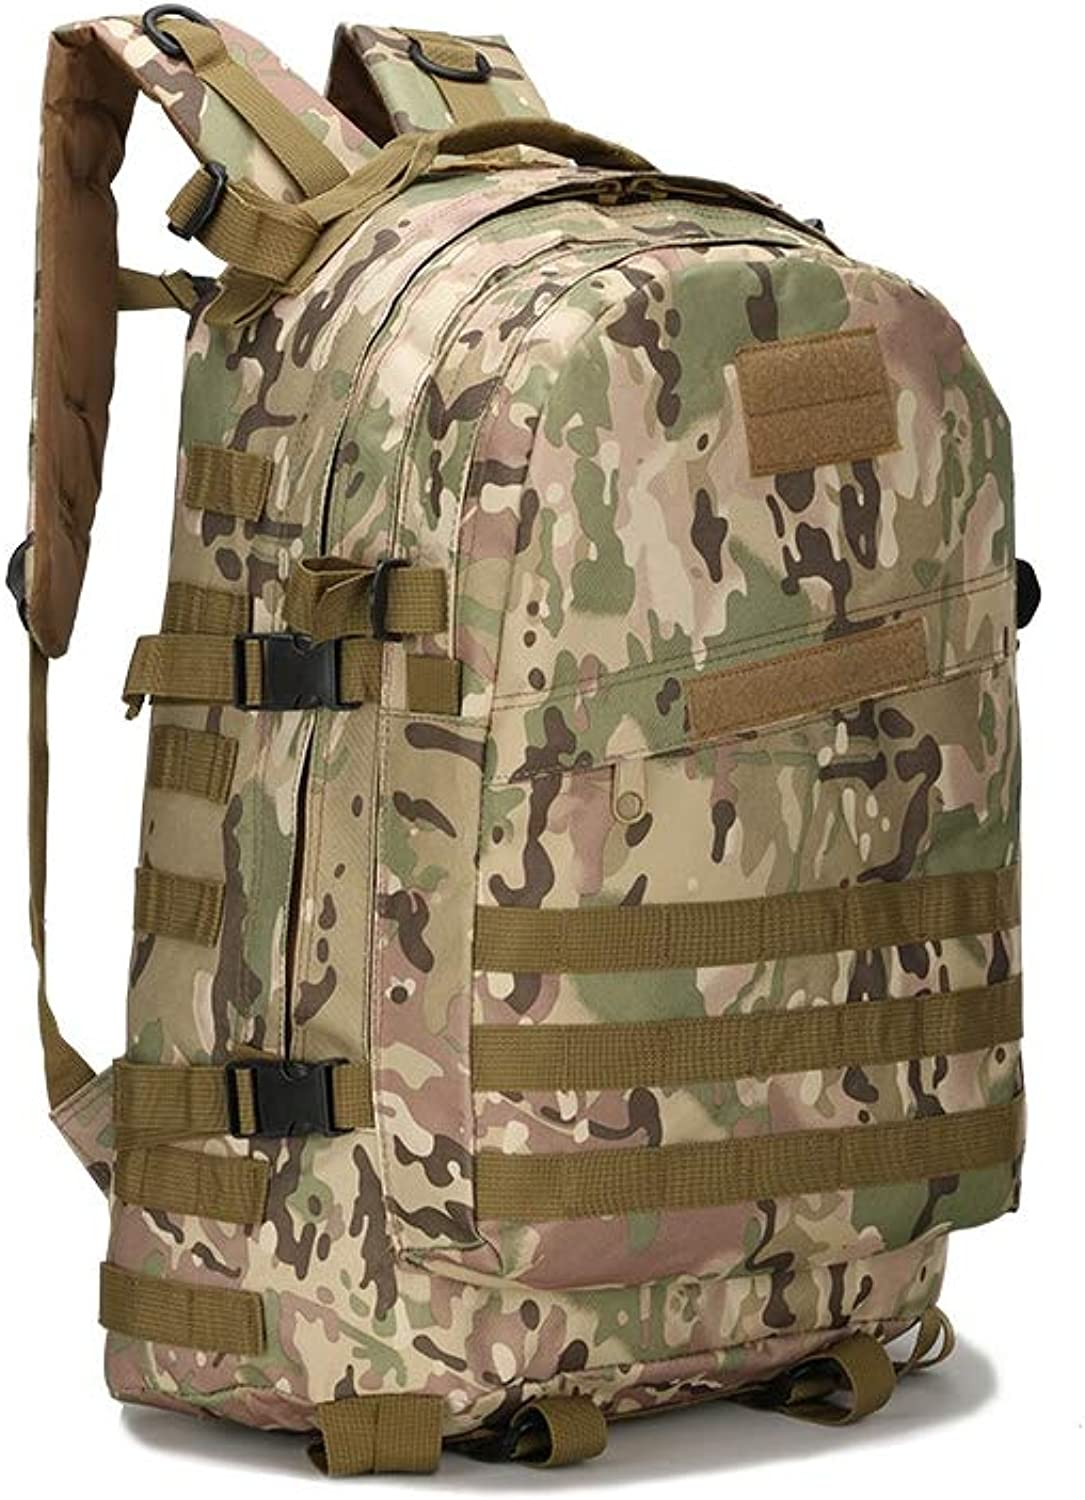 9ec11f42699f XTUNWM 45L Capacity Backpack Mountaineering Hiking Hunting Camping ...